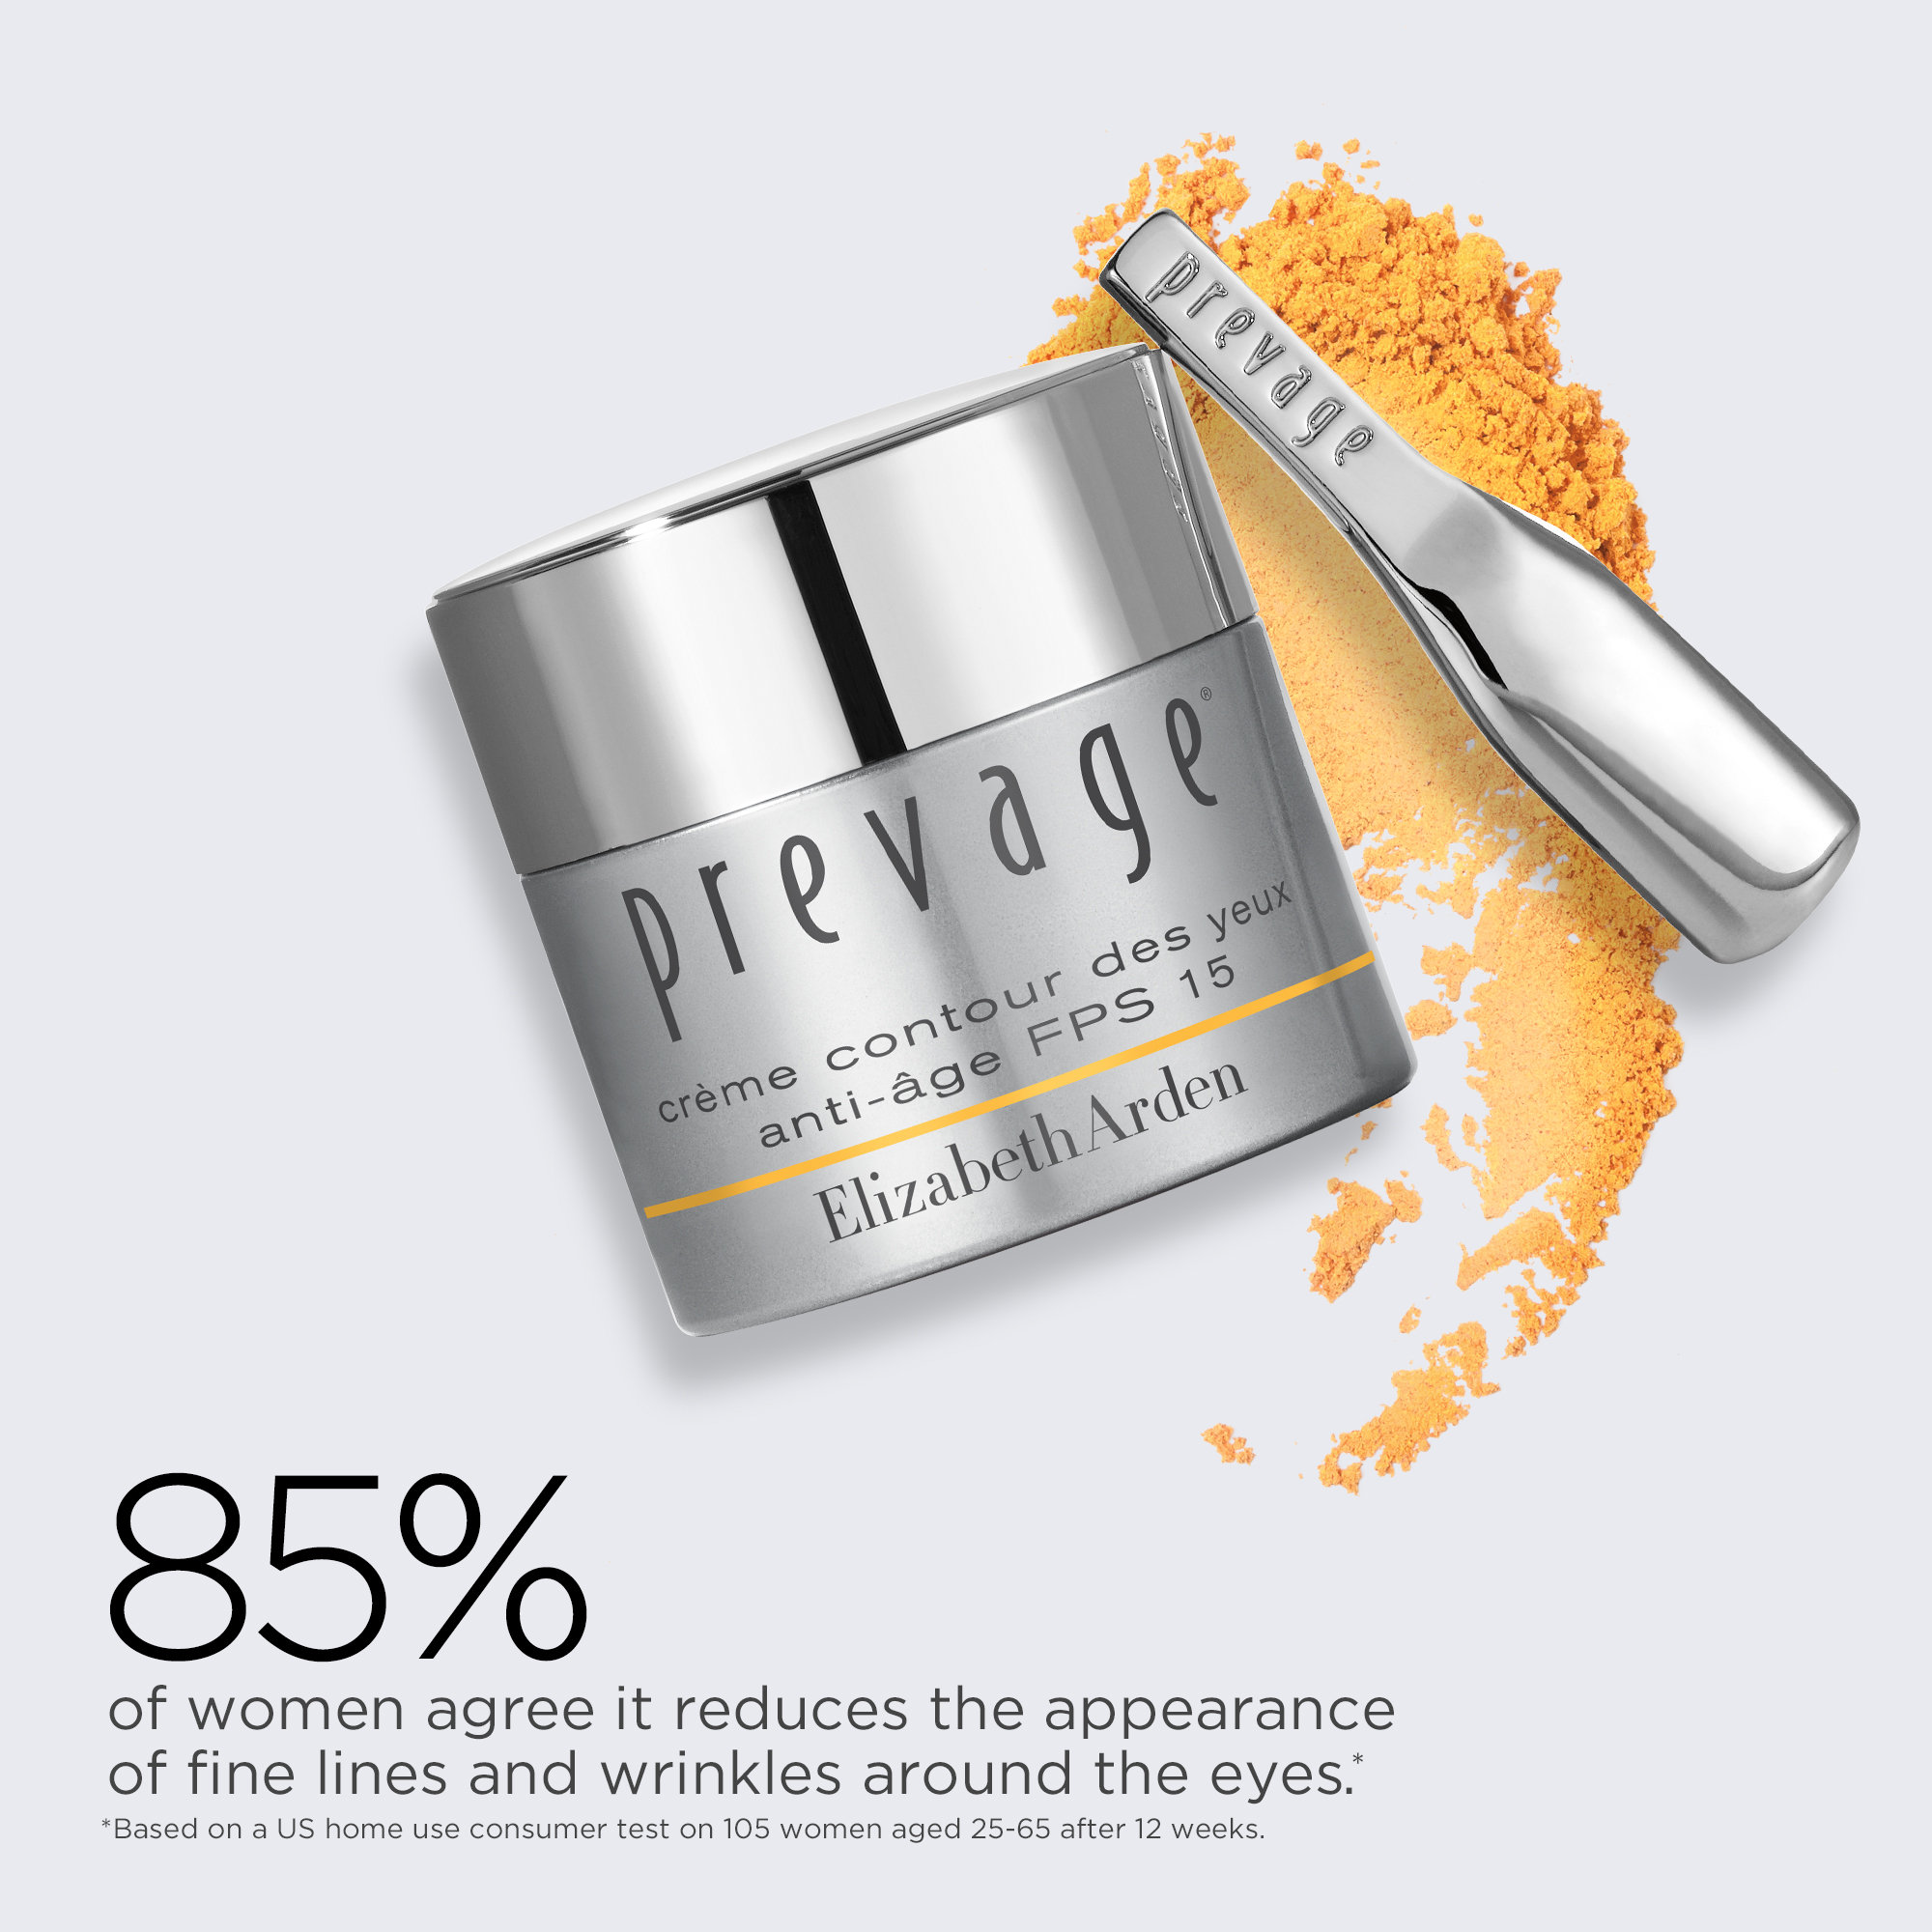 85% of women agree it reduces the appearance of fine lines and wrinkles around the eyes based on a US home use consumer test on 105 women aged 25-65 after 12 weeks.